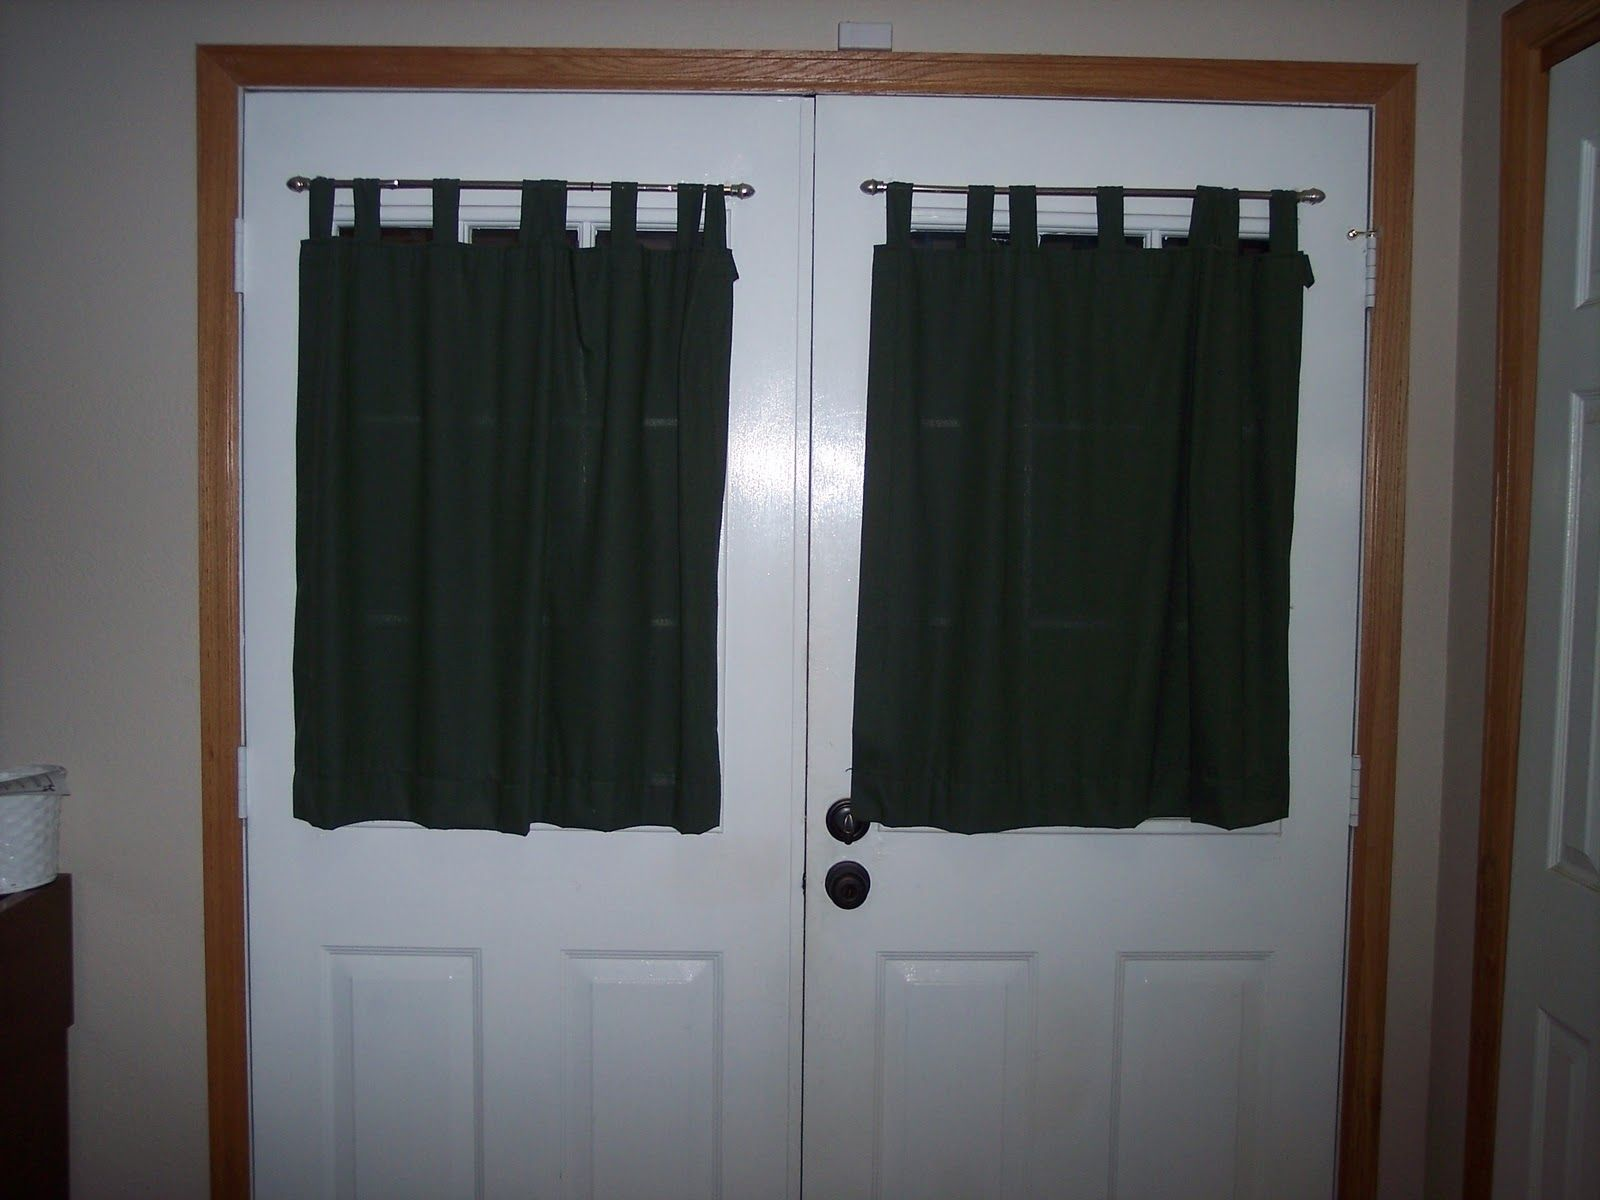 Small Curtain For Front Door Window Small Window Curtains Front Doors With Windows Small Door Window Curtains